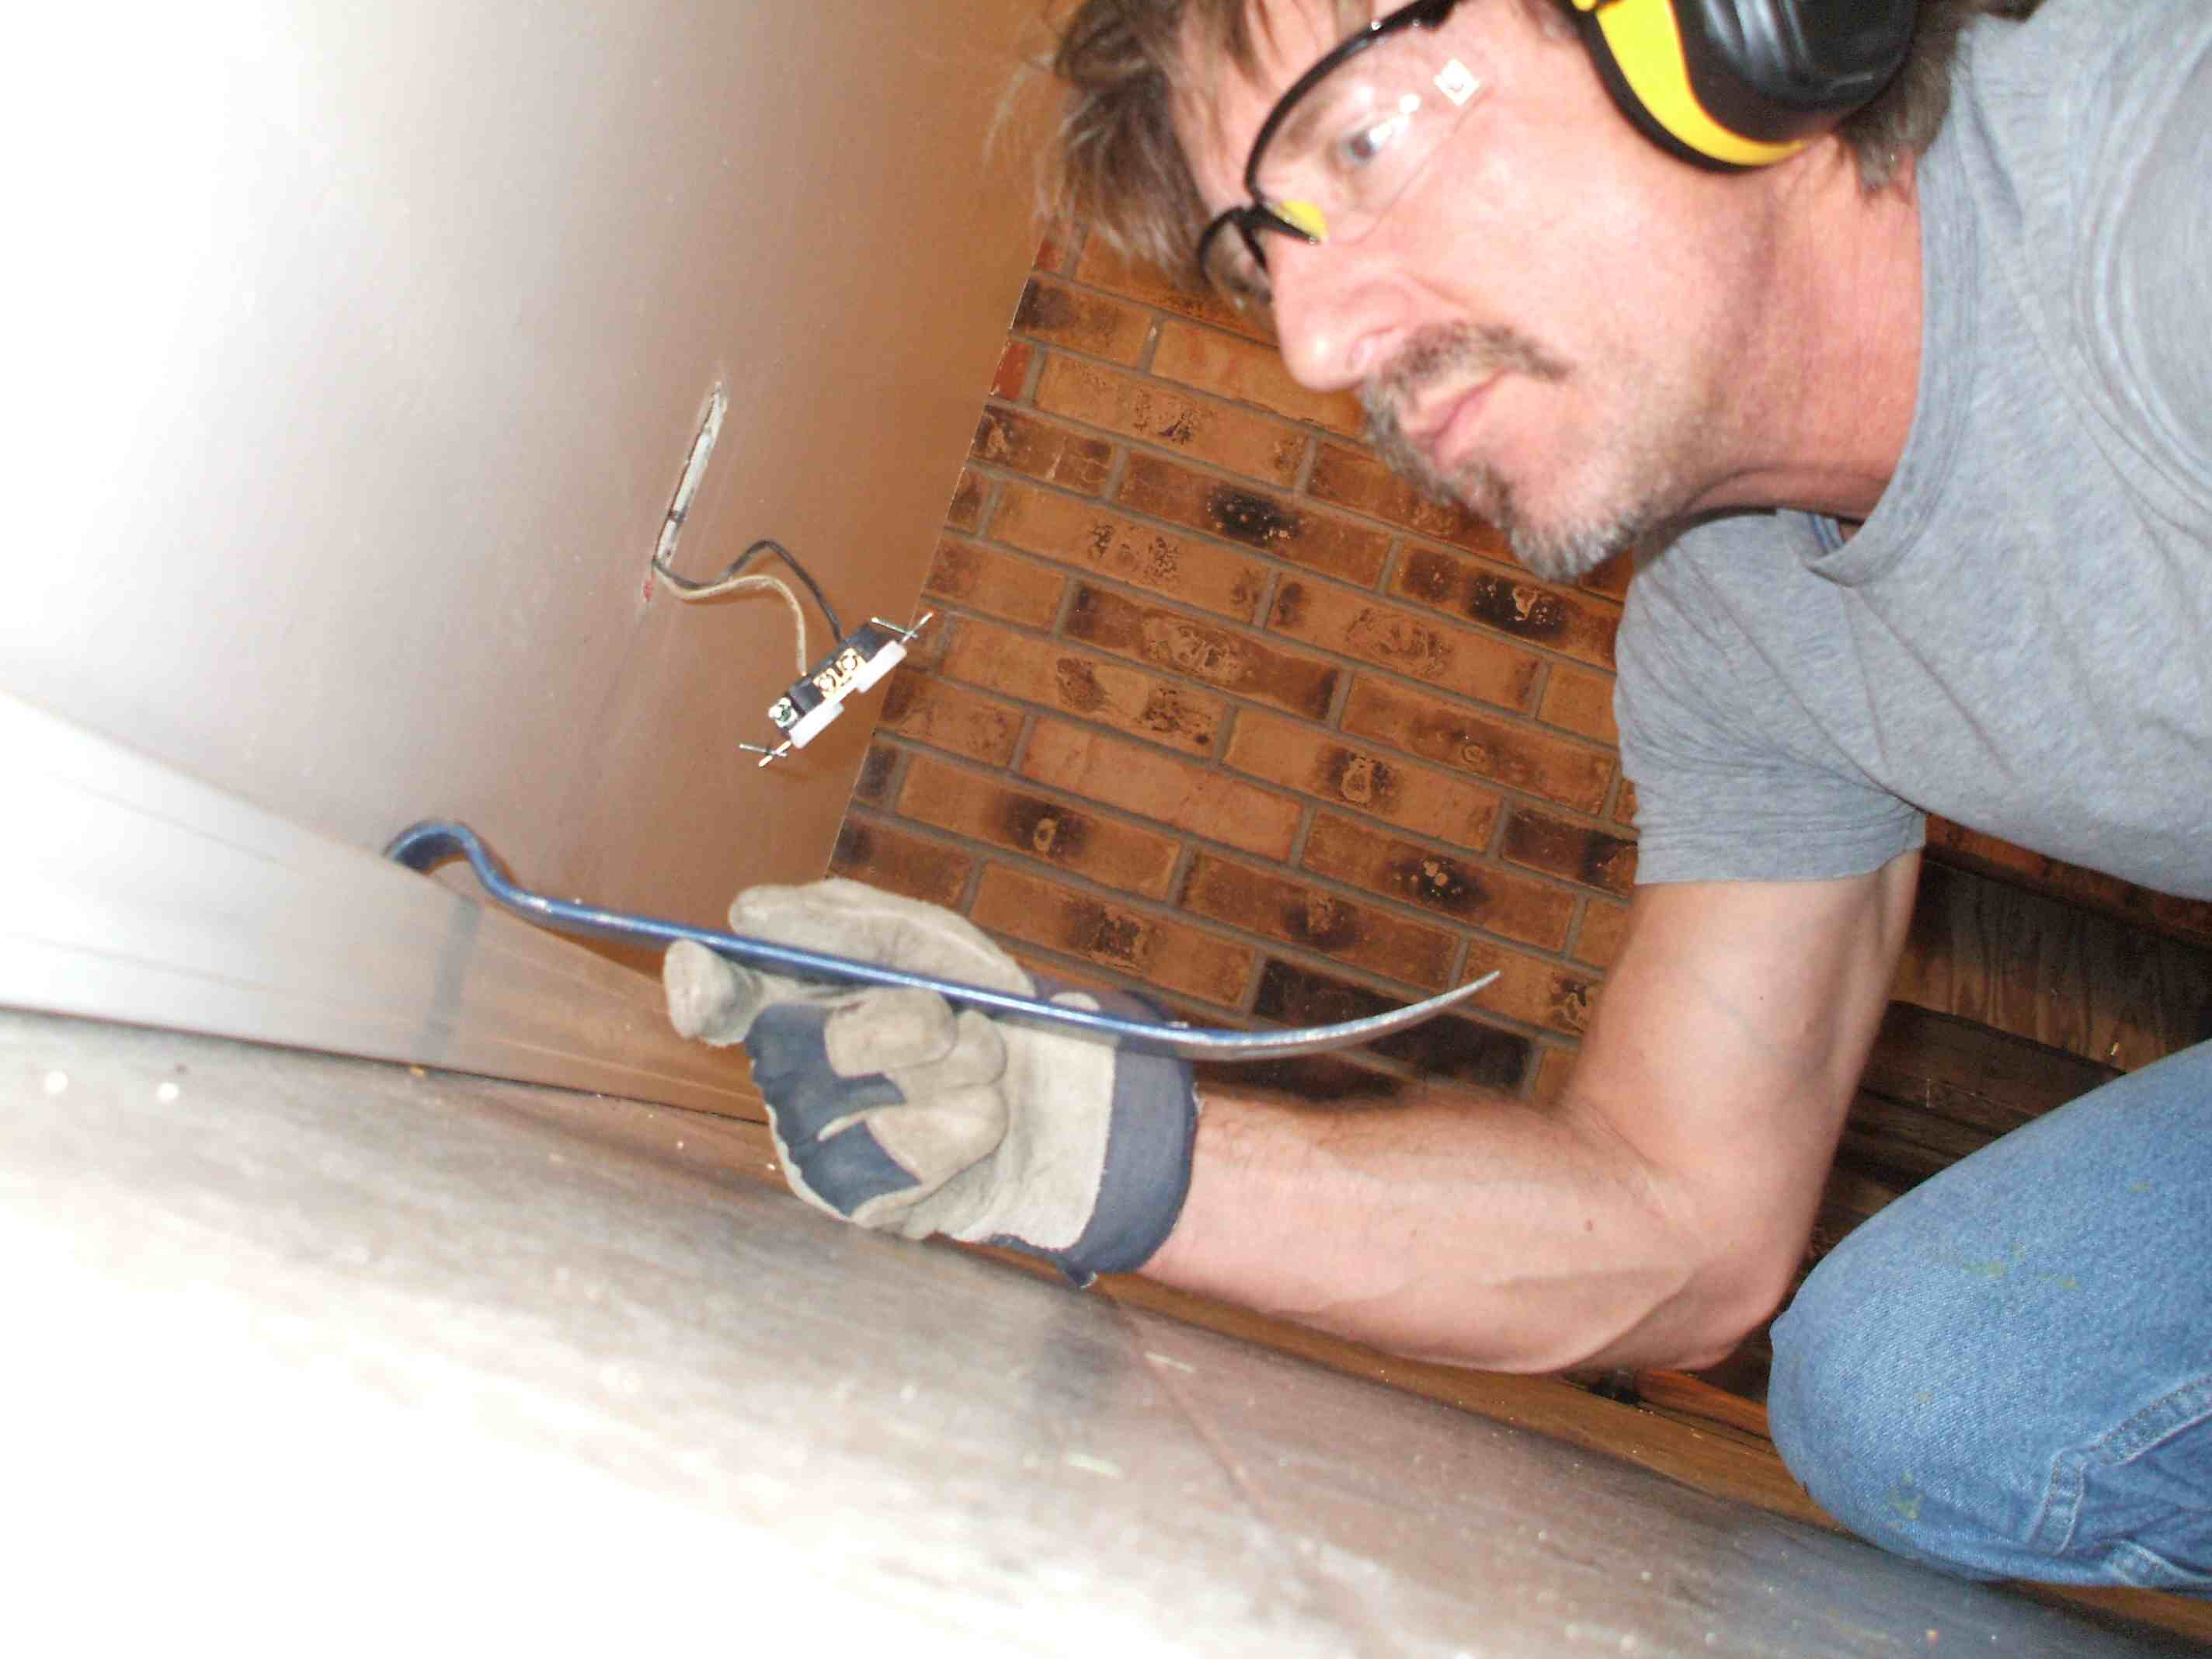 A man removing a wall's trim